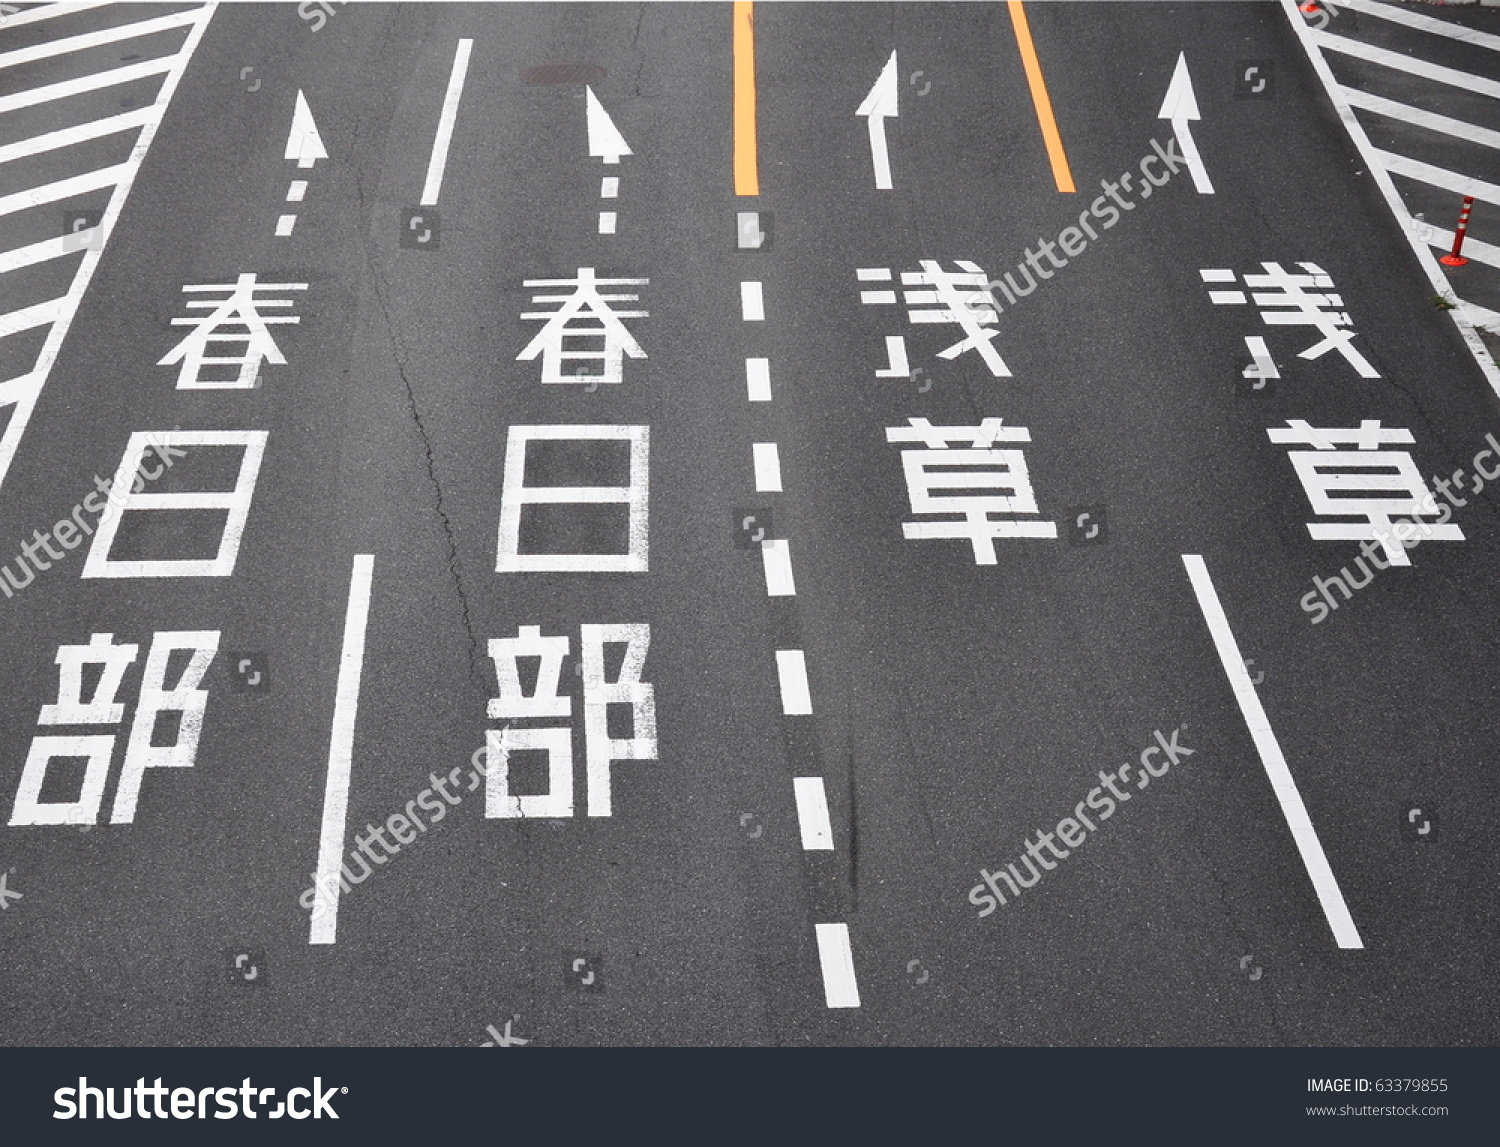 japanese road signs with directions for different lanes stock photo 63379855   shutterstock